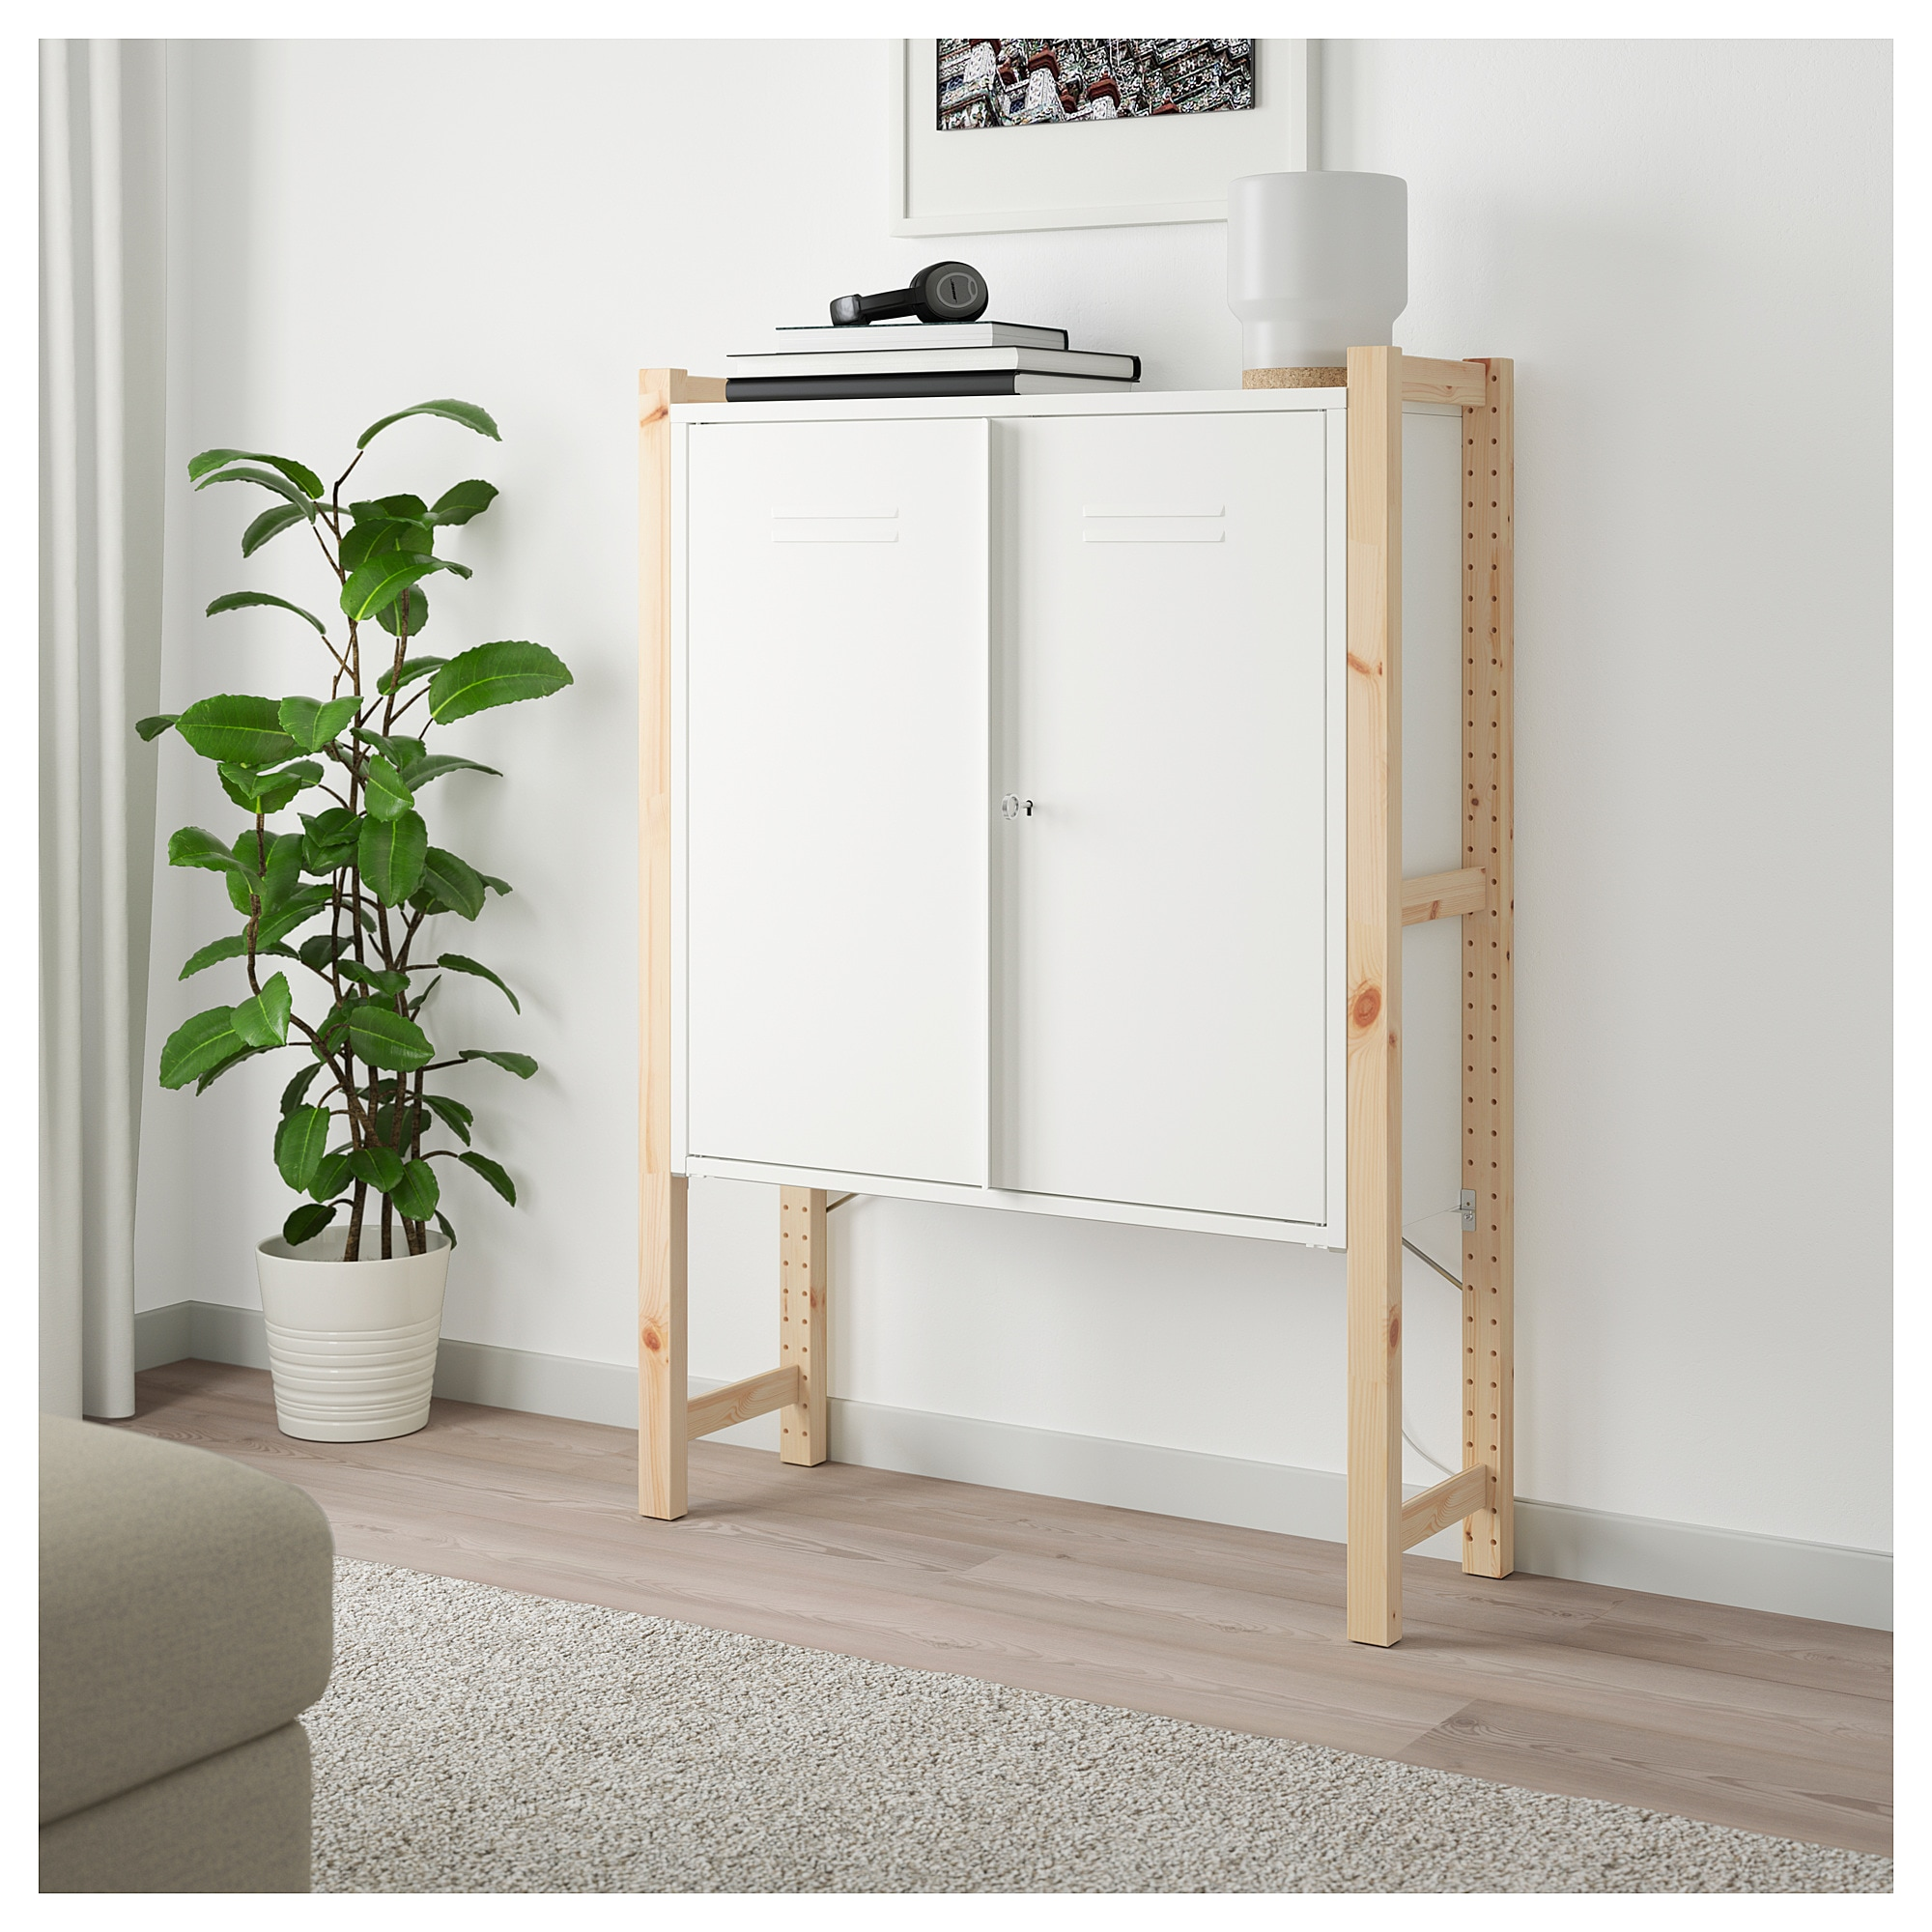 Inter ikea systems b v 1999 2018 privacy policy responsible disclosure